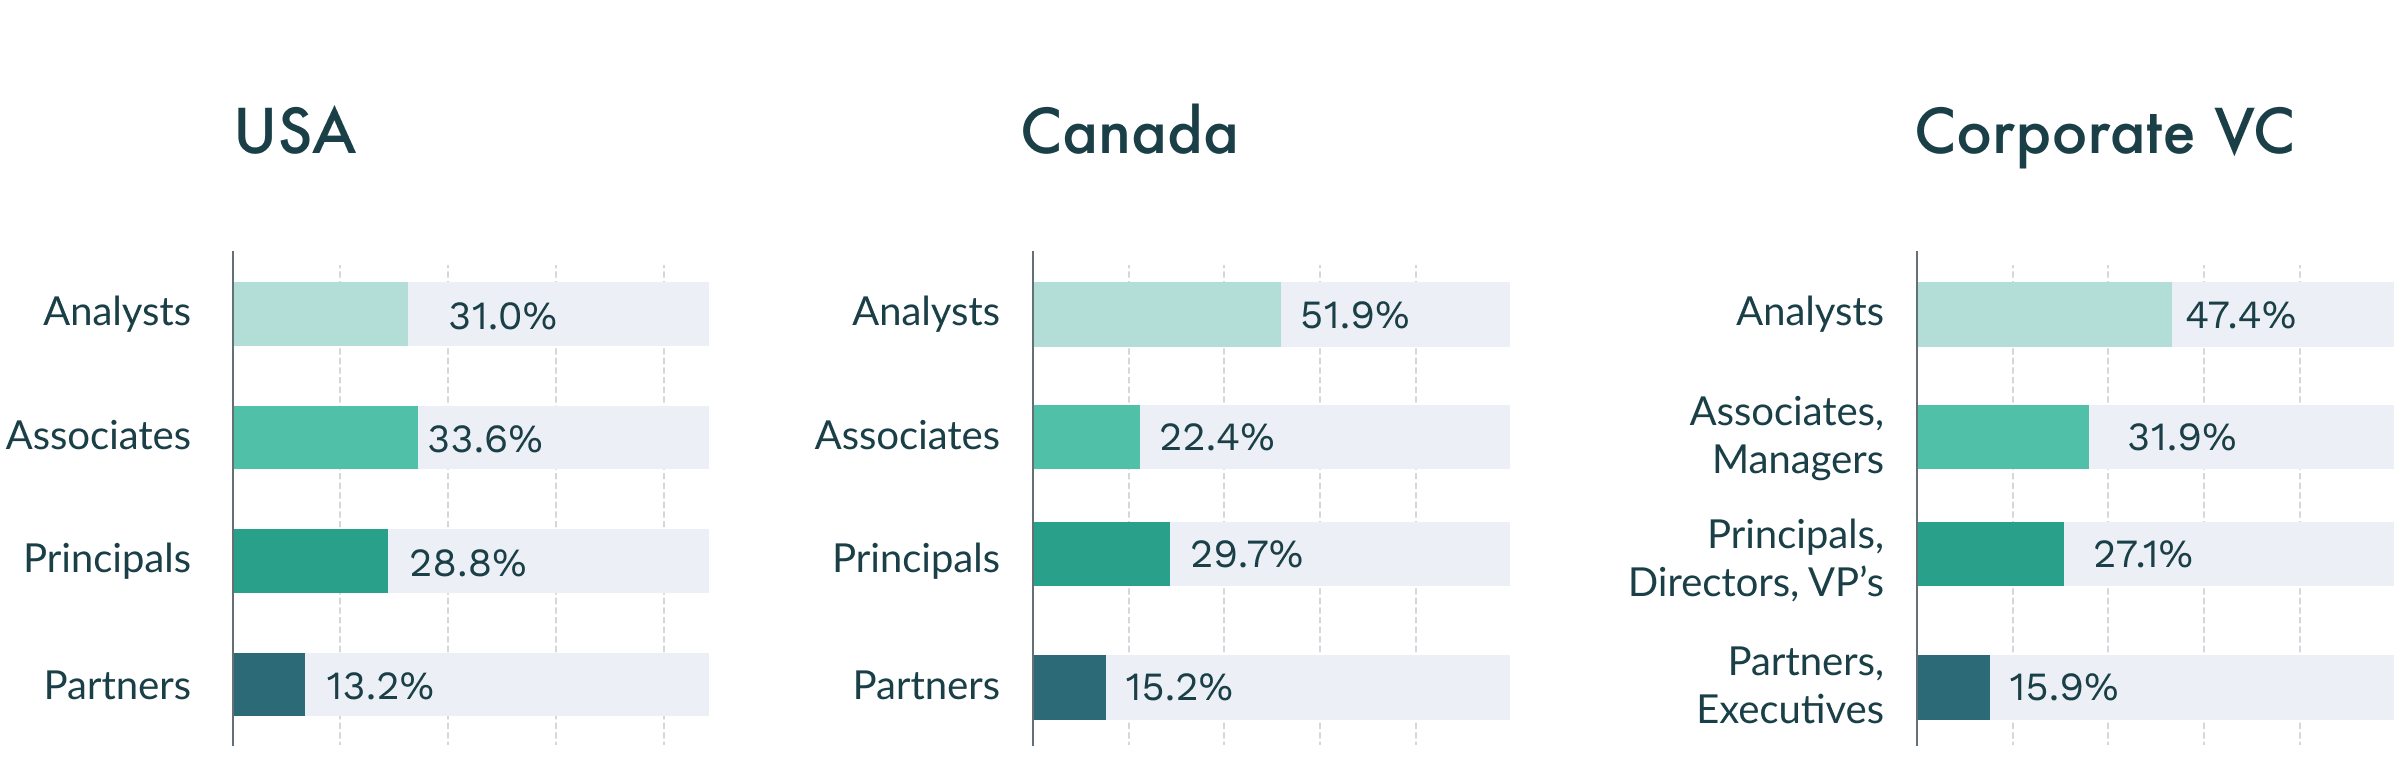 In the USA, female representation for Analysts starts at 31%, and goes down to 13.2% at the Partners level. For Canada, it goes from 51.9% to 15.2%; for Corporate VC's, it goes from 47.4% to 15.9%, respectively.